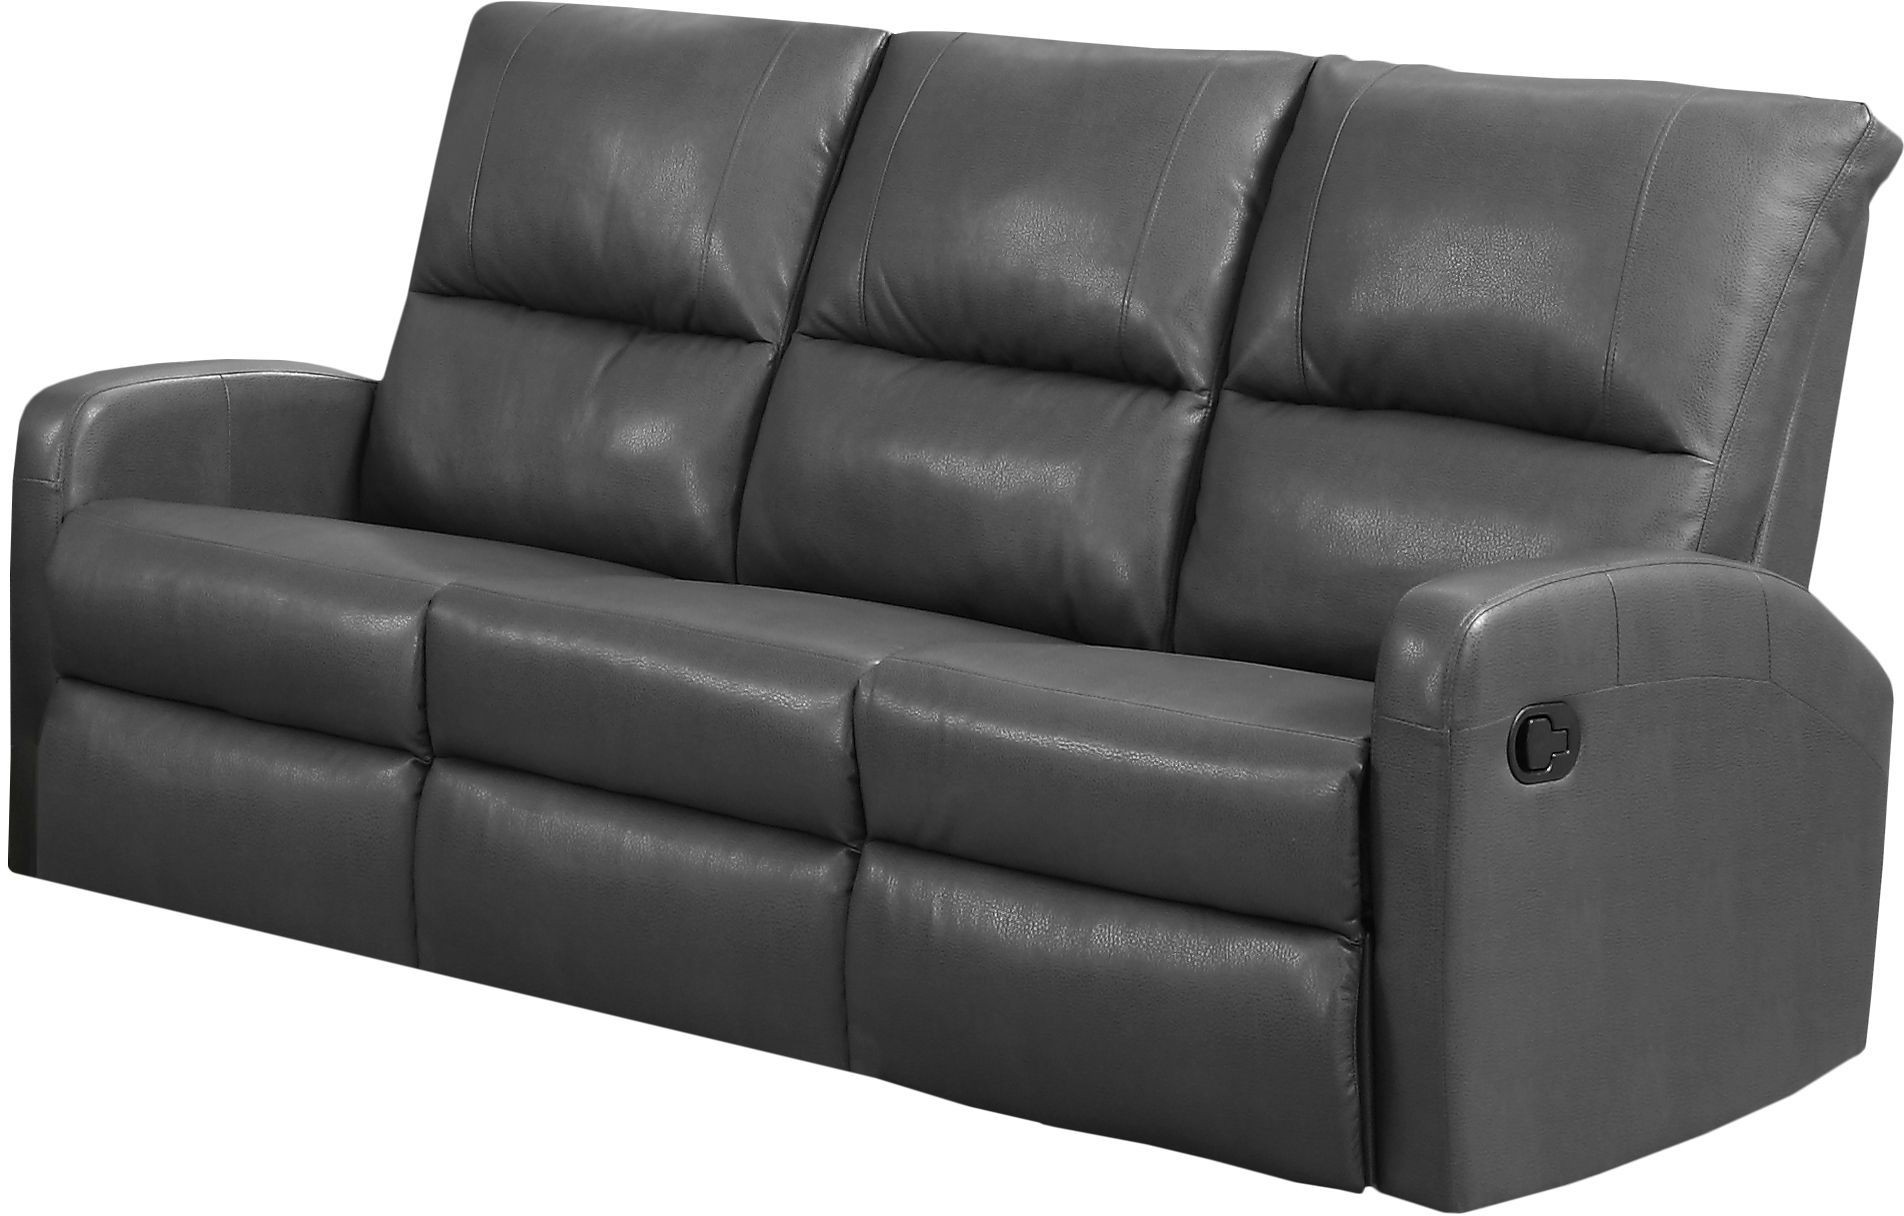 Gray Leather Sofa Gray Leather Reclining Sofa Gray Leather Reclining Sofa